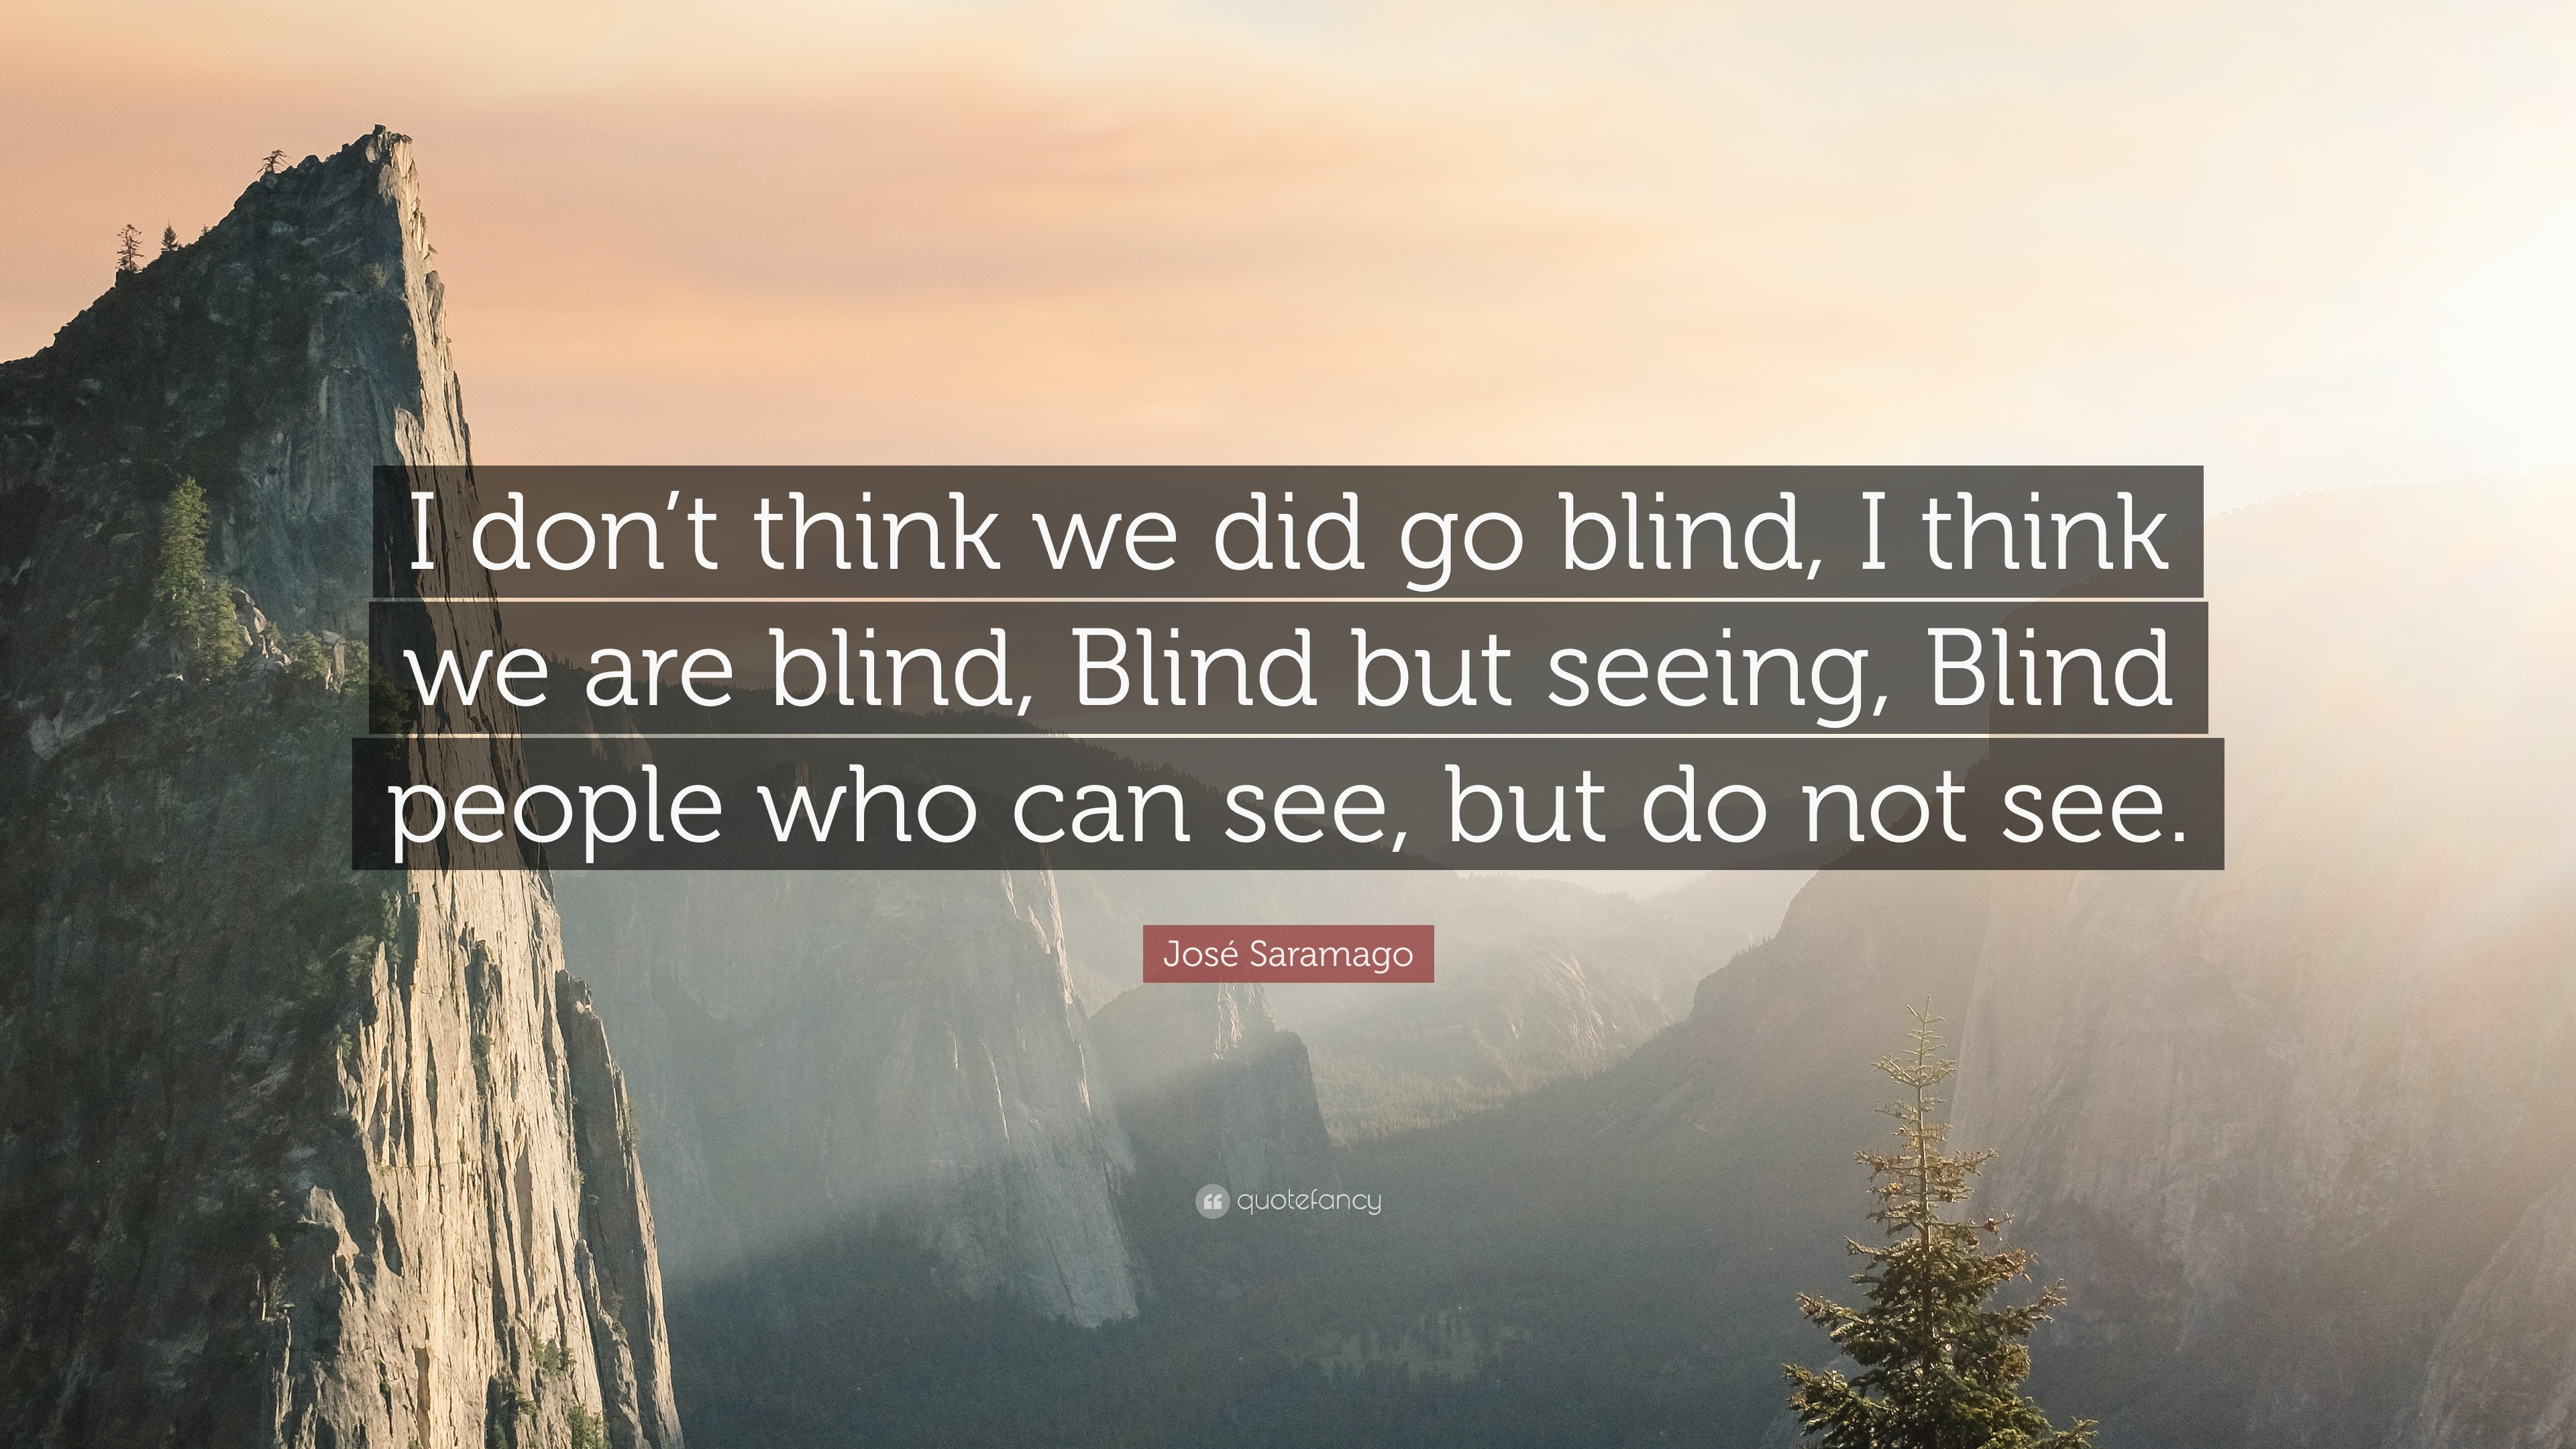 jos u00e9 saramago quote   u201ci don u2019t think we did go blind  i think we are blind  blind but seeing